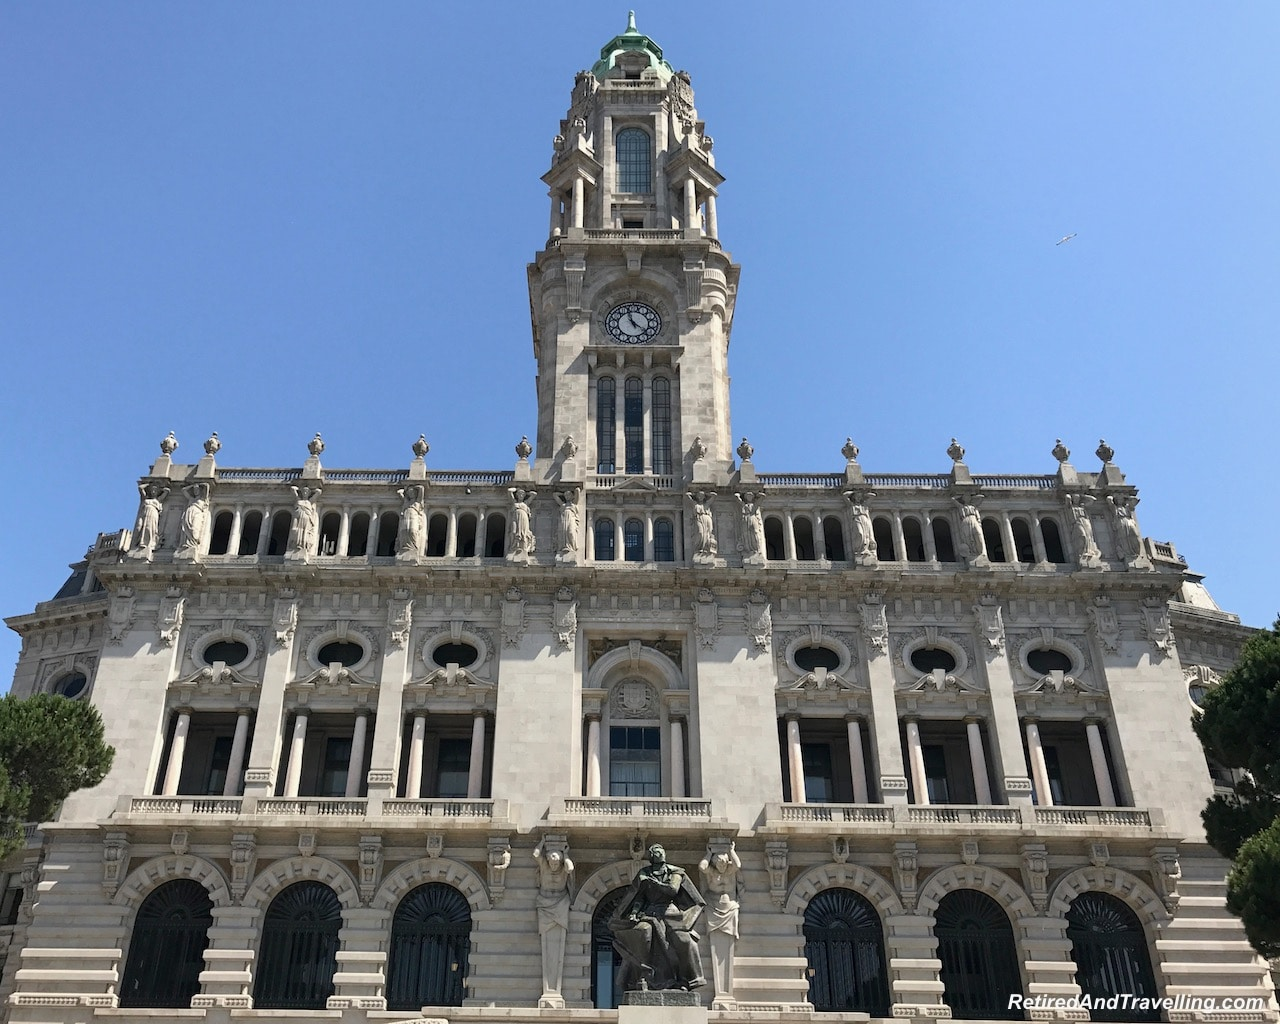 Camera Municipal - Building and Statue Art - Things To Do In Porto.jpg